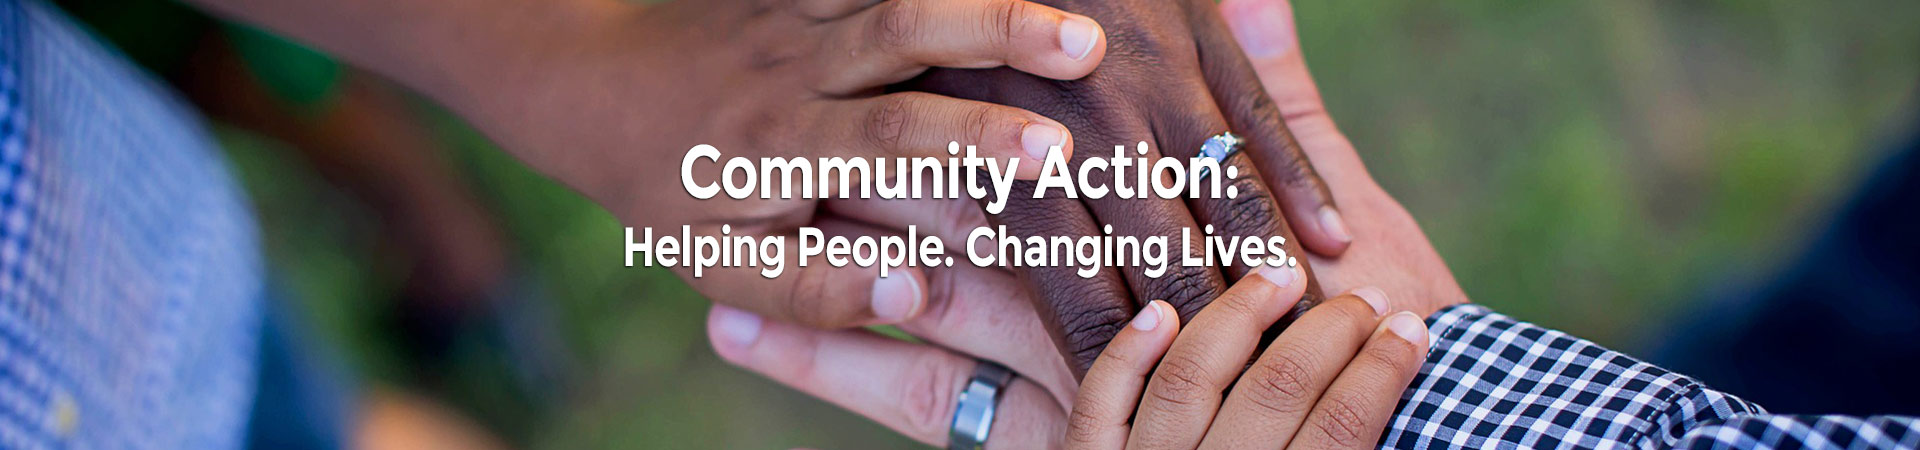 Community Action: Helping People. Changing Lives.